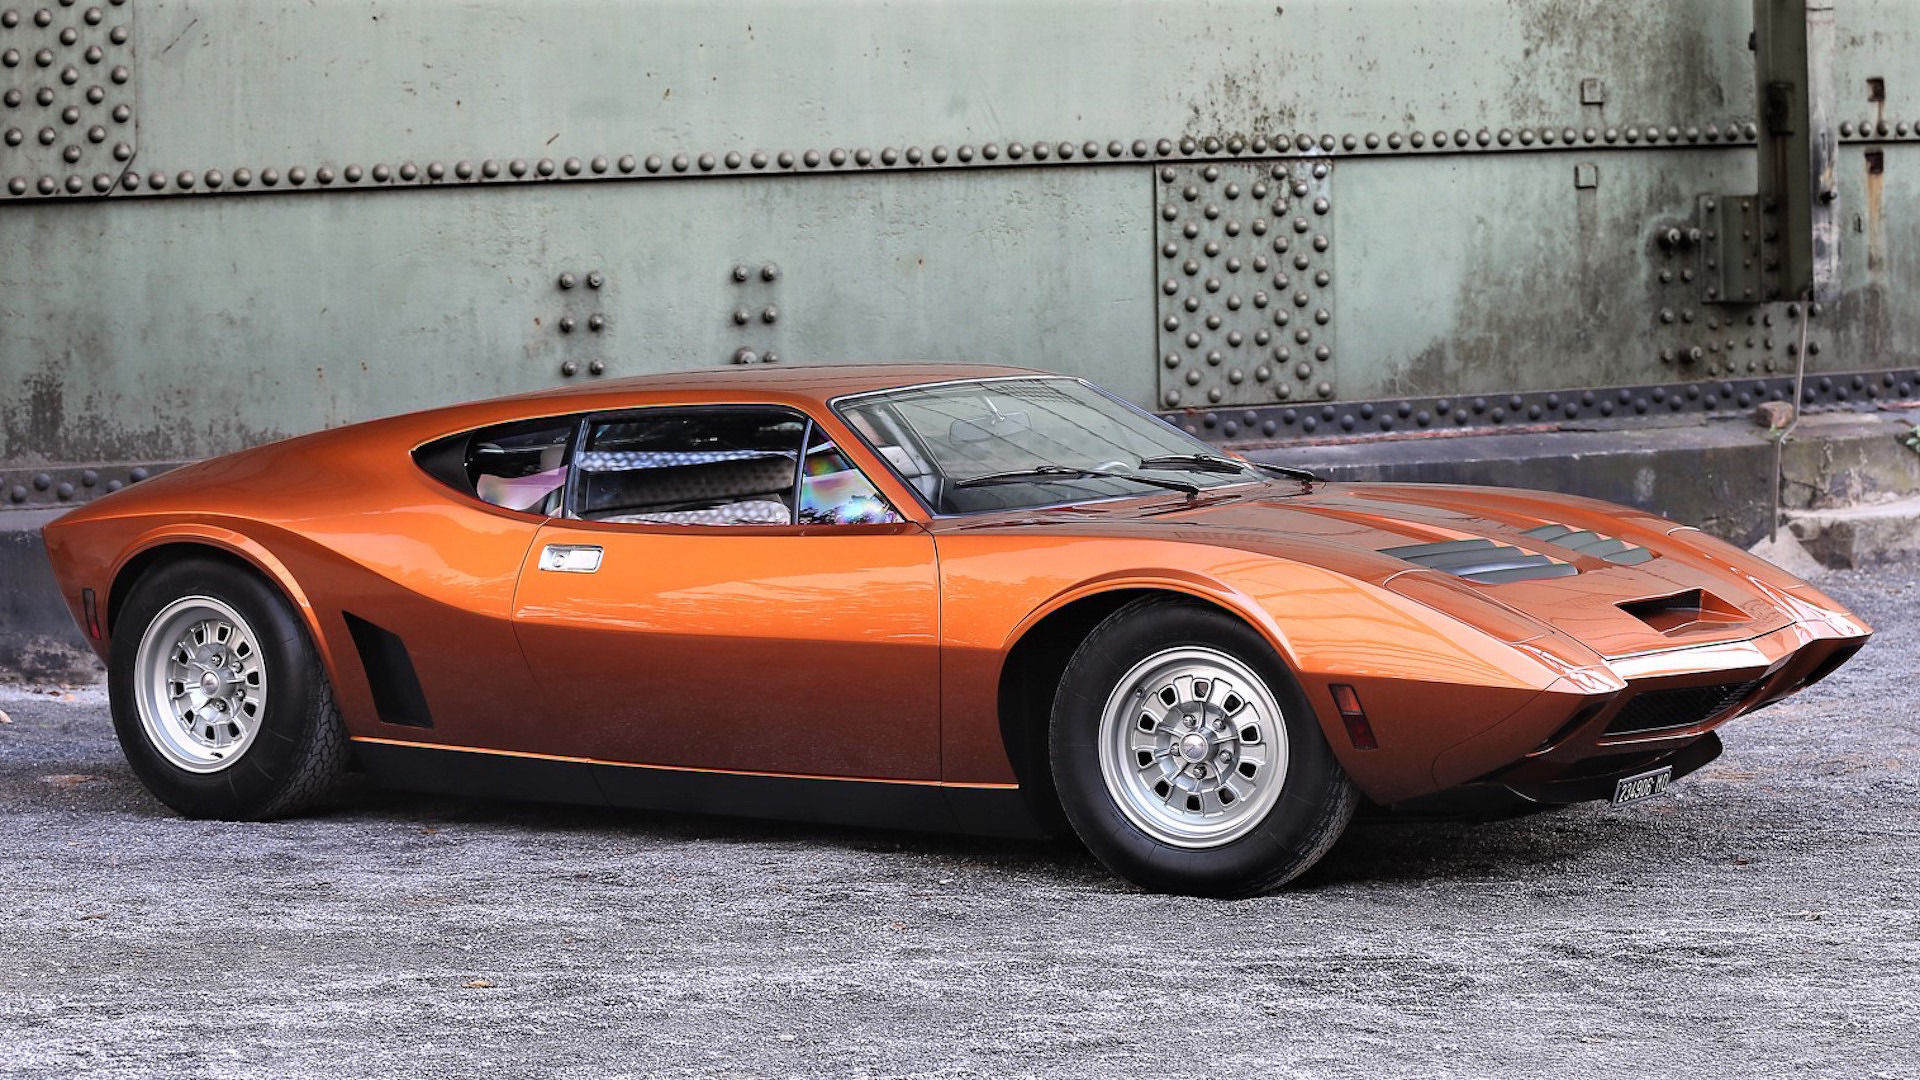 This Amx 3 Could Be The Most Expensive Amc Ever Sold